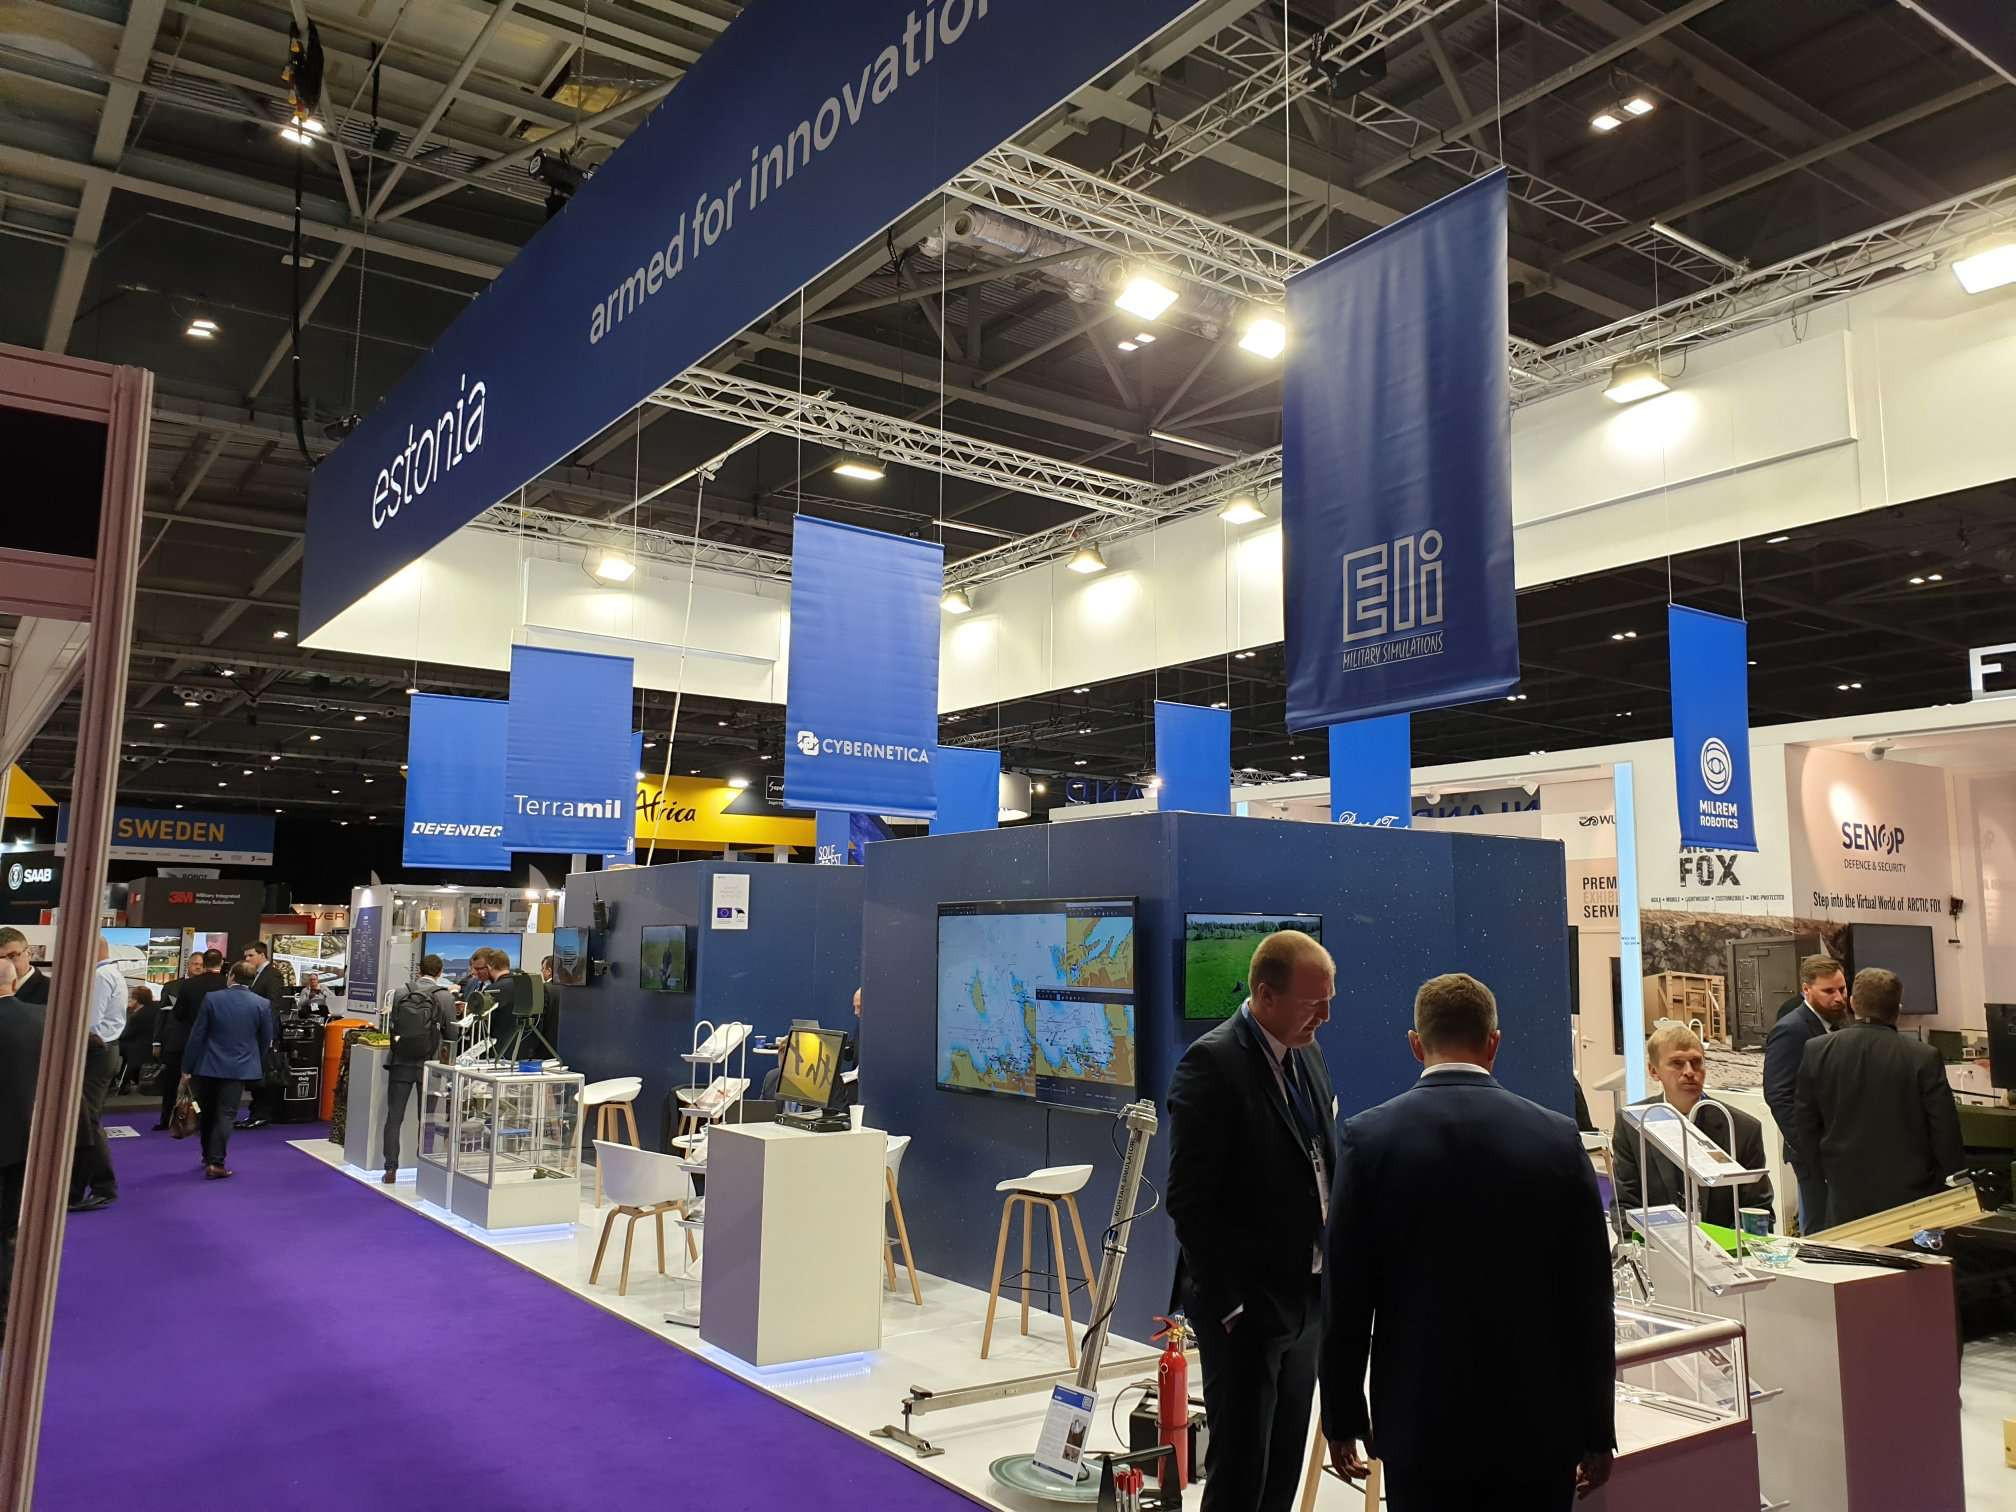 Estonia DSEI 2019 London